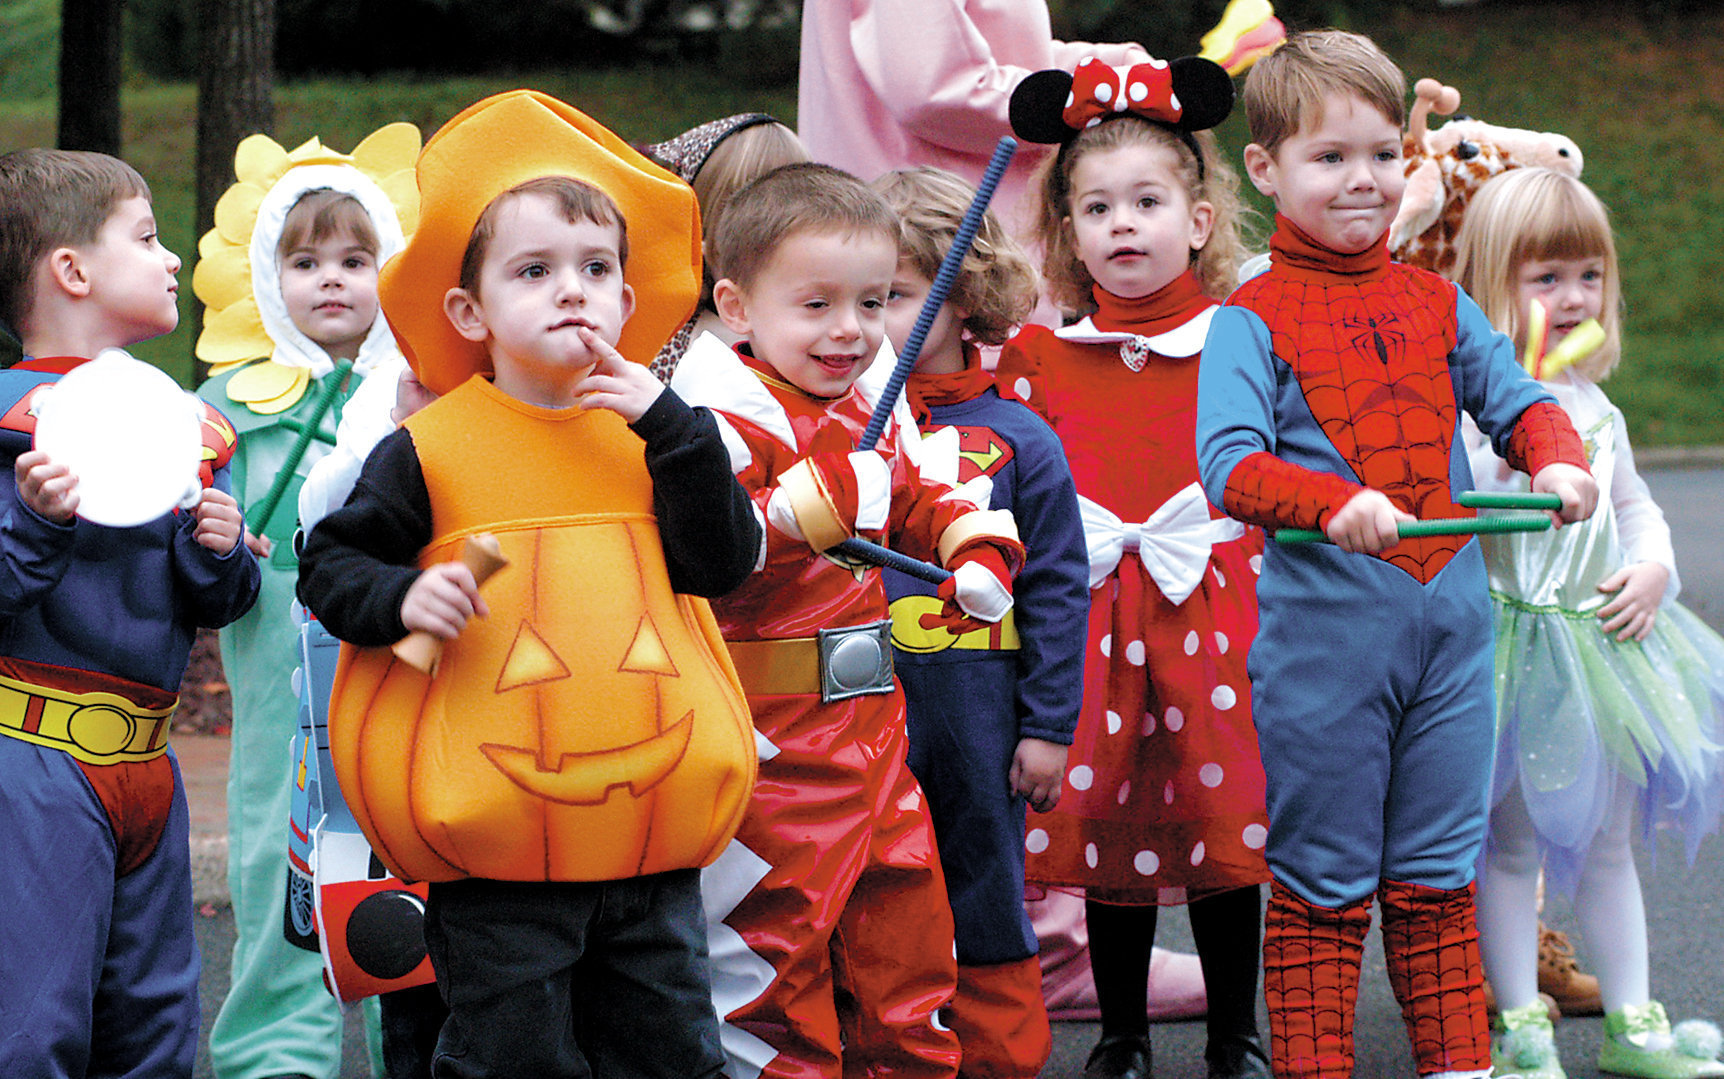 Halloween Kids.Why Halloween Can Be Overwhelming For Foster Kids Casa For